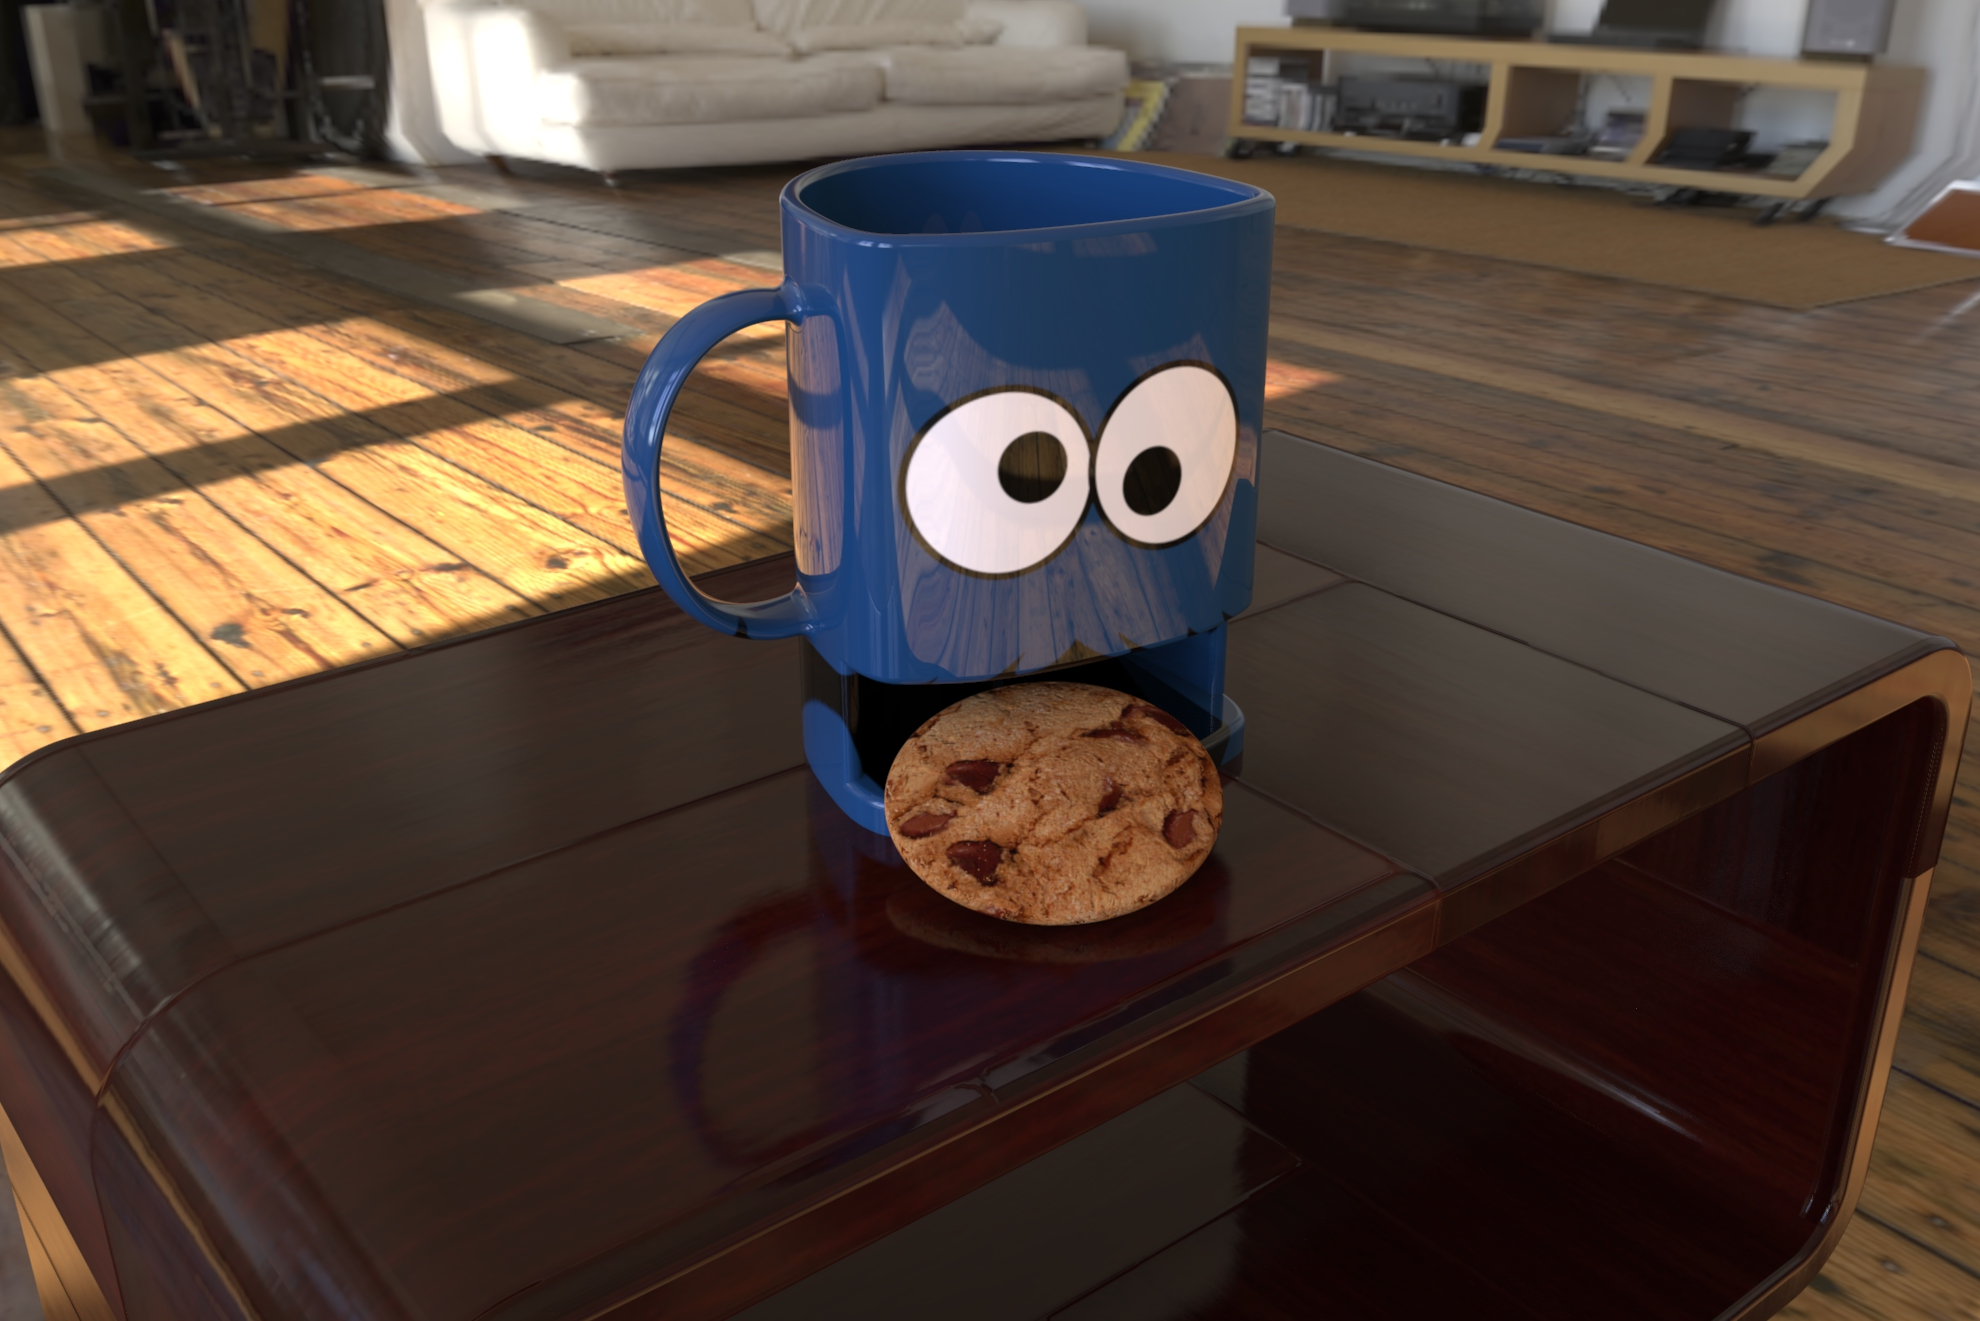 cookie mug 3d model ige igs iges sldprt  obj 282056